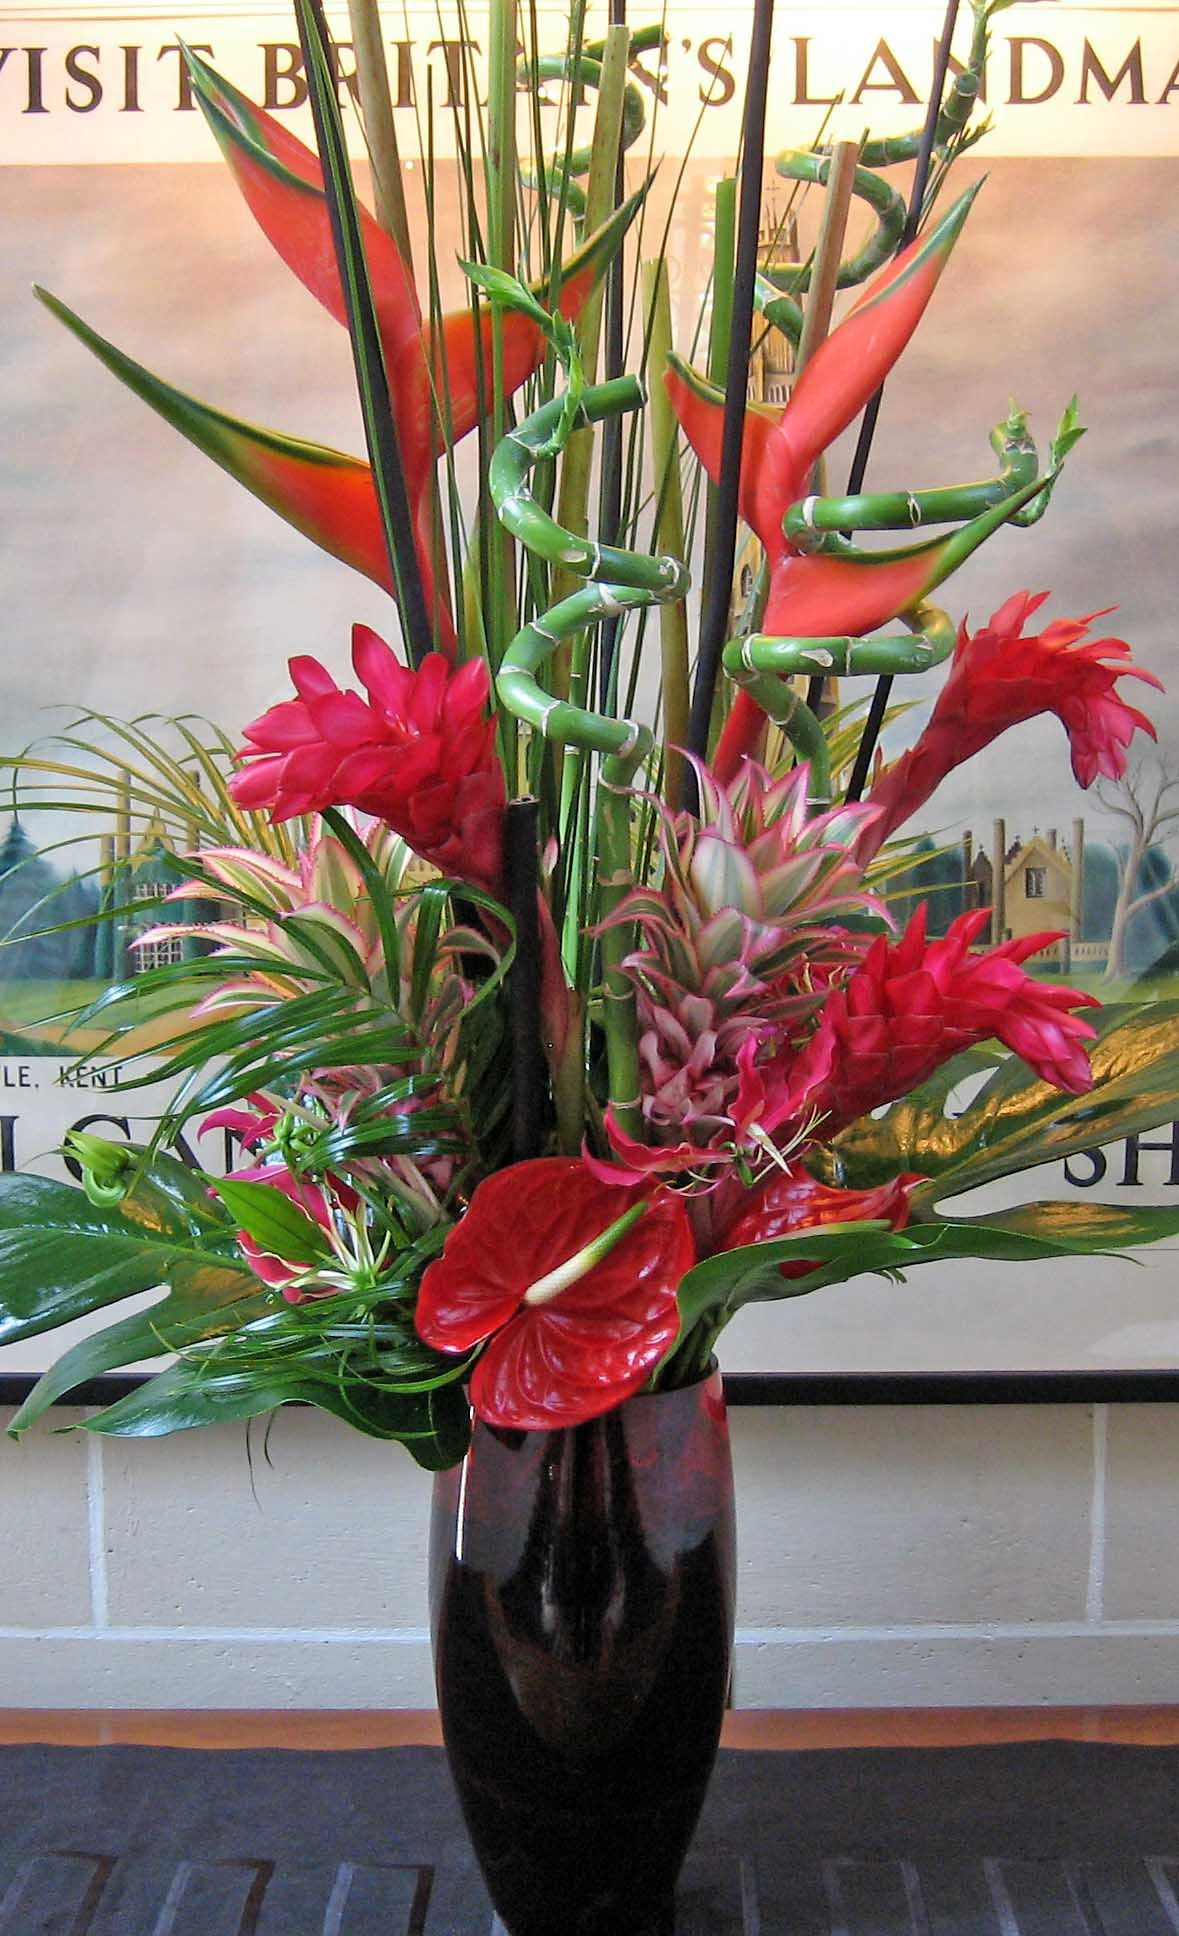 51vr Red Anthurium Red Ginger Lilly Red Heleconia Bamboo Curly Bamboo Mixed Foliage In Black Vase Arranjos De Flores Flores Arranjos